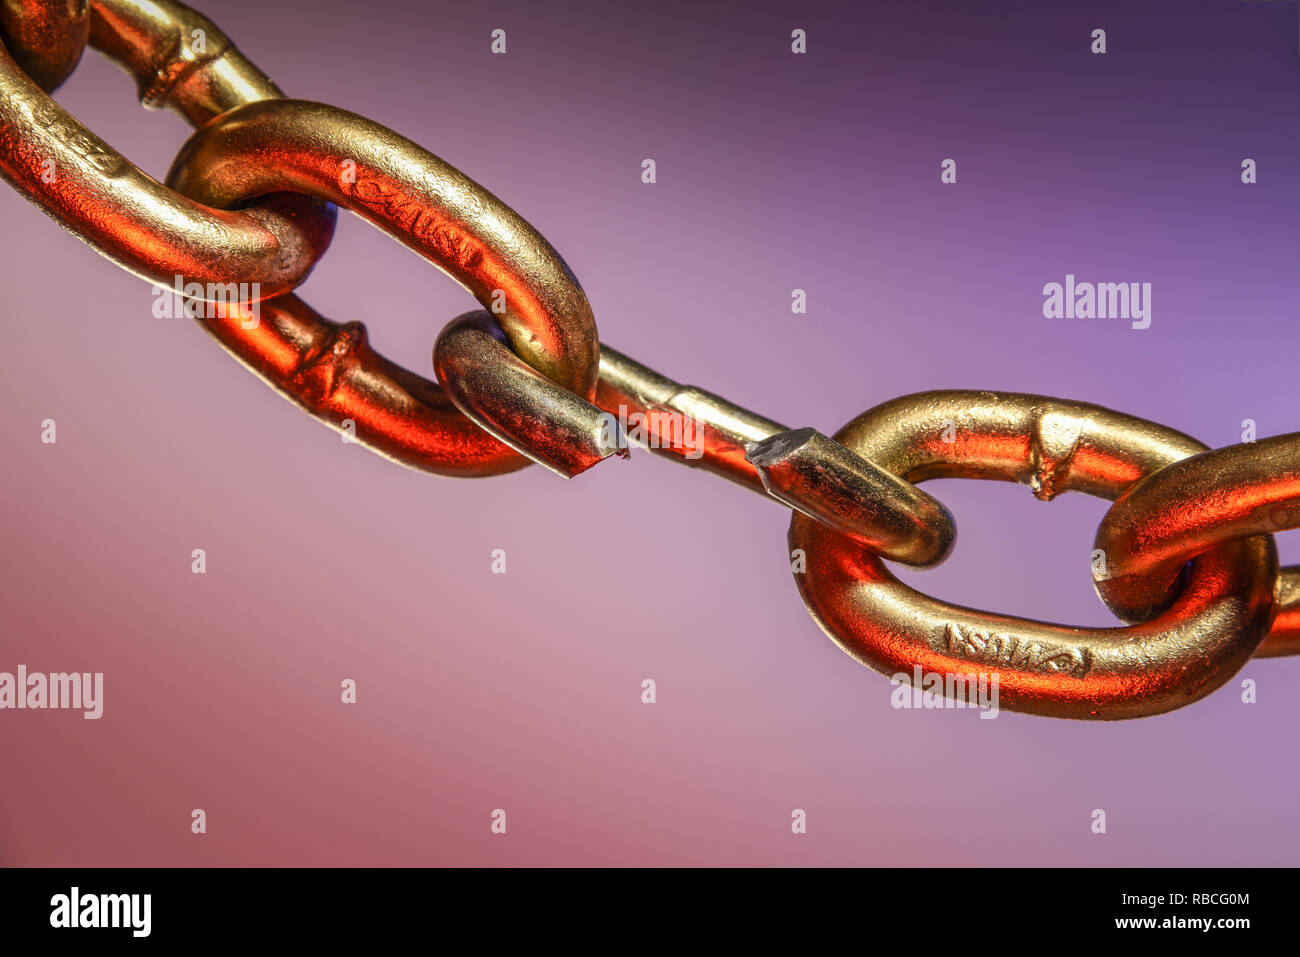 Weak Link in a Chain - Stock Image